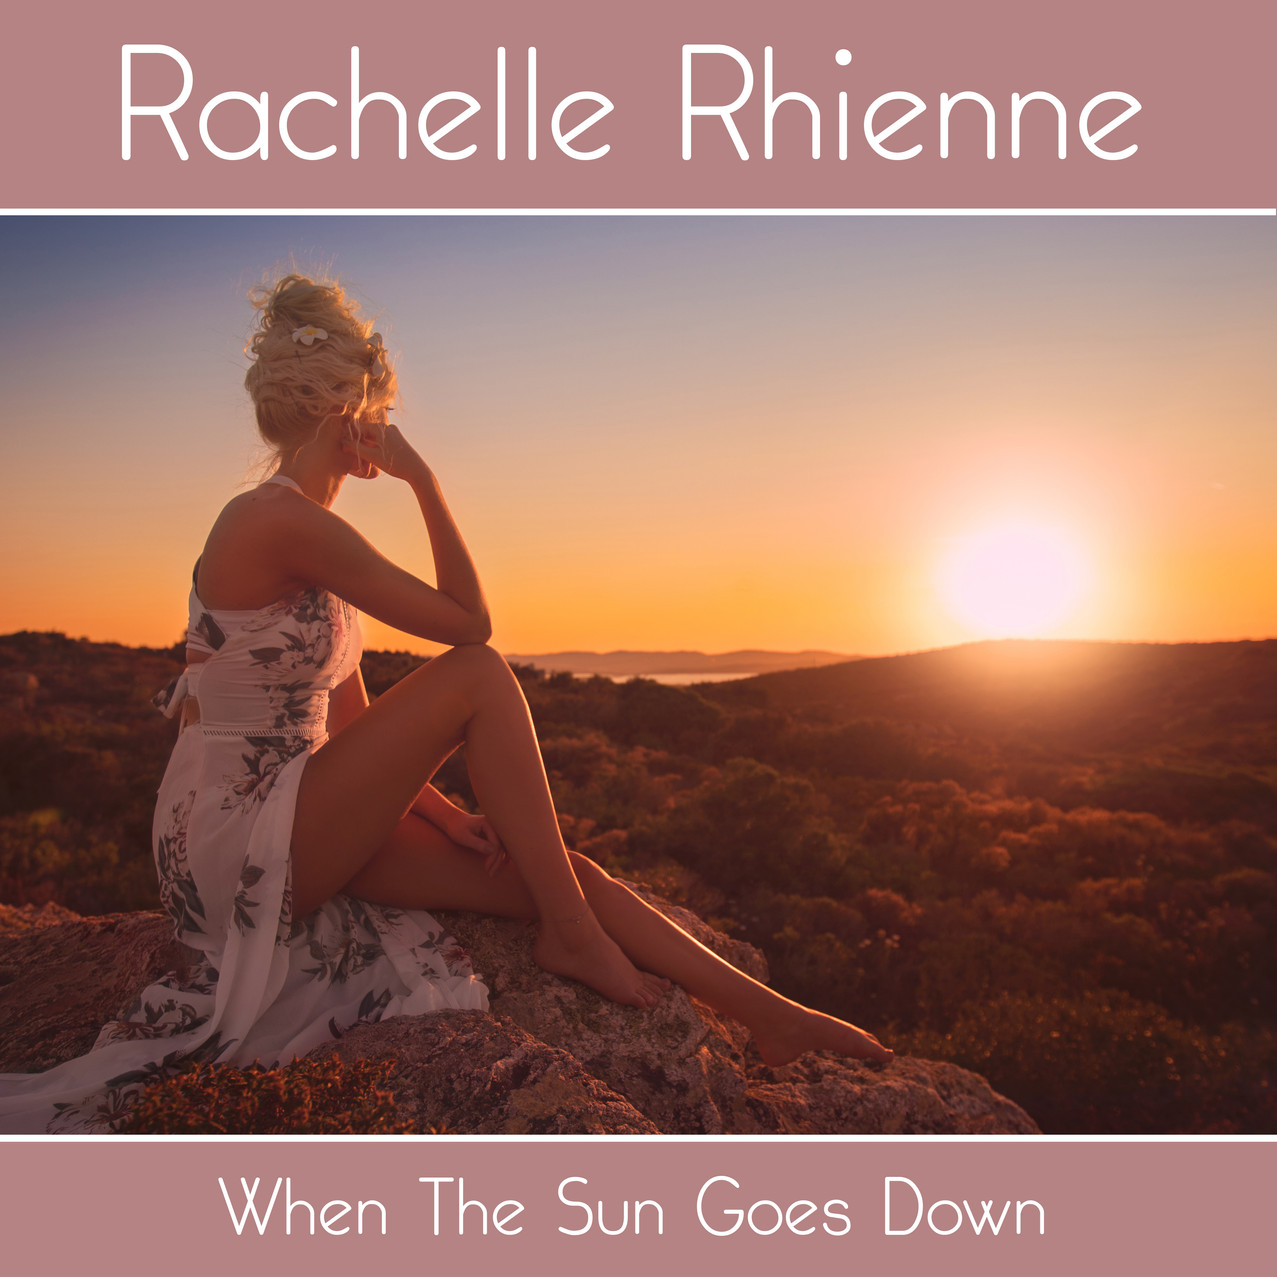 Photography & Artwork. Photo of Rachelle Rhienne taken in Sardinia at one of the locations used for the accompanying music video, which I also filmed and edited.